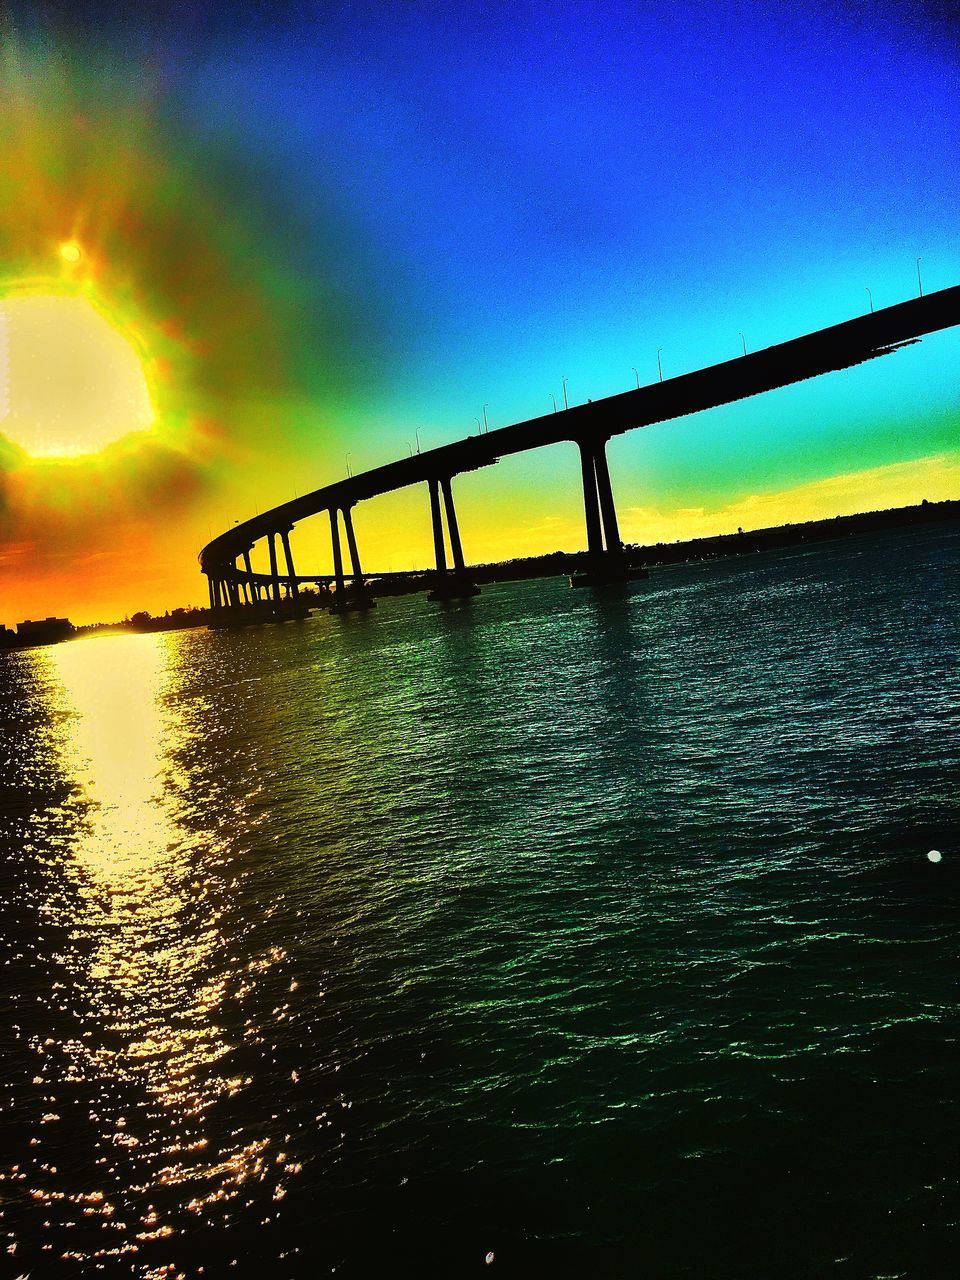 bridge - man made structure, sunset, connection, built structure, water, sky, architecture, transportation, nature, outdoors, river, silhouette, tranquility, no people, sunlight, travel destinations, beauty in nature, scenics, day